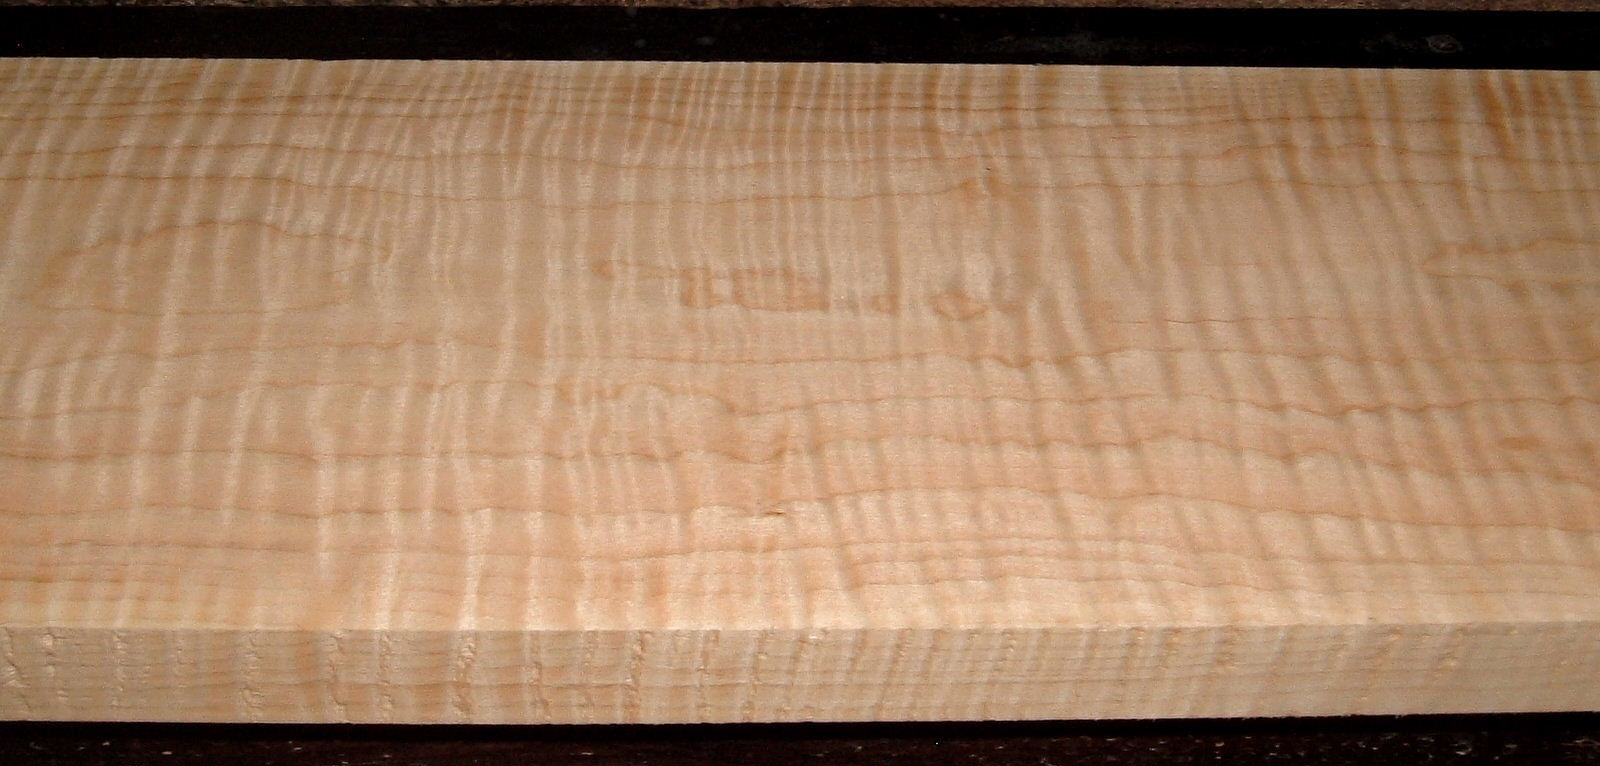 M2104-291, 1-3/16x7-3/4x55, Curly Tiger Maple